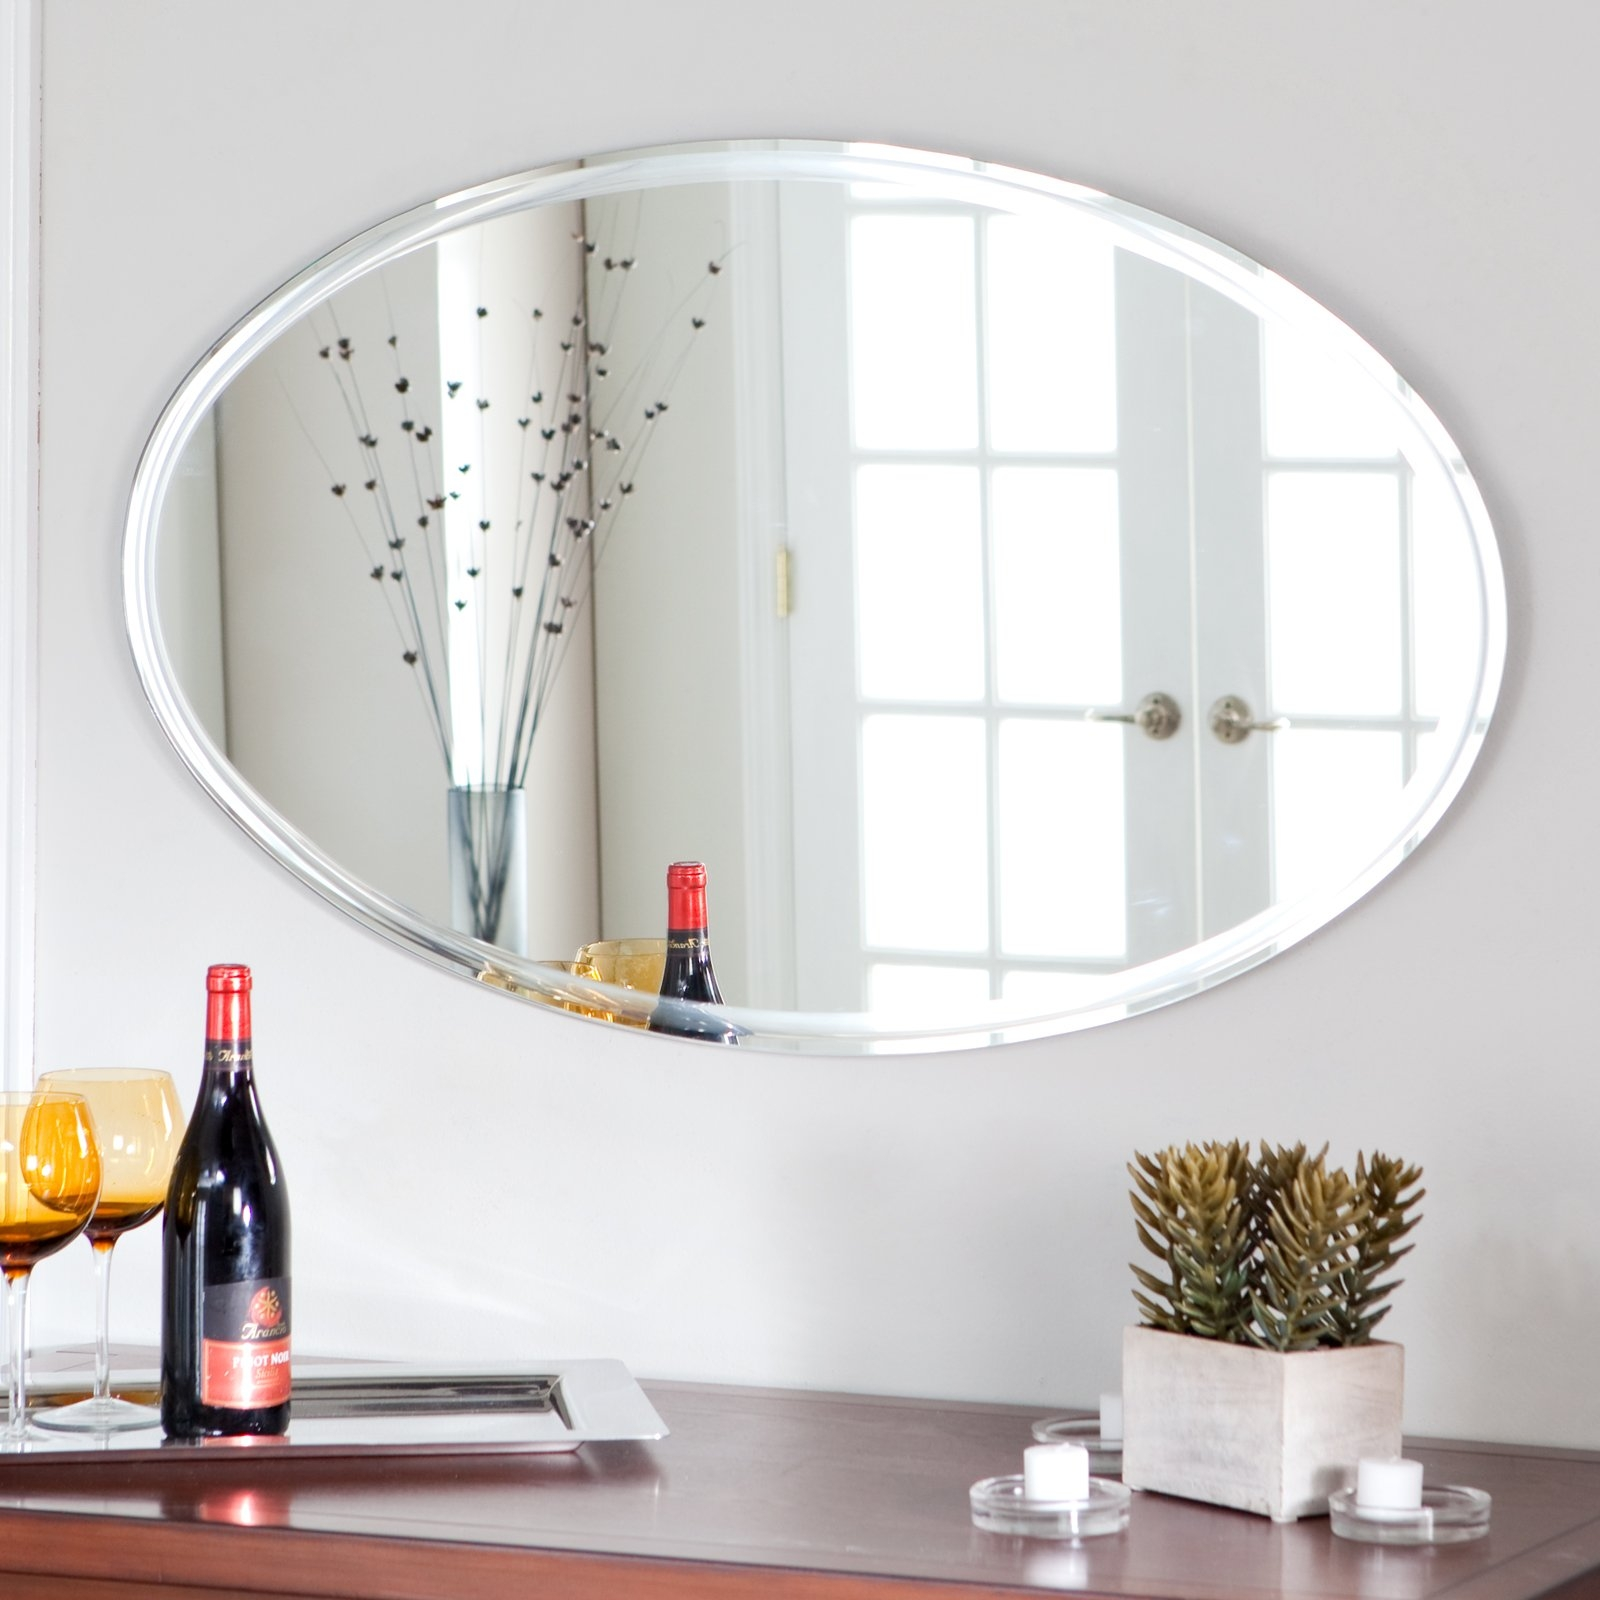 White Framed Oval Bathroom Mirror Creative Bathroom Decoration Intended For White Oval Bathroom Mirror (Image 15 of 15)